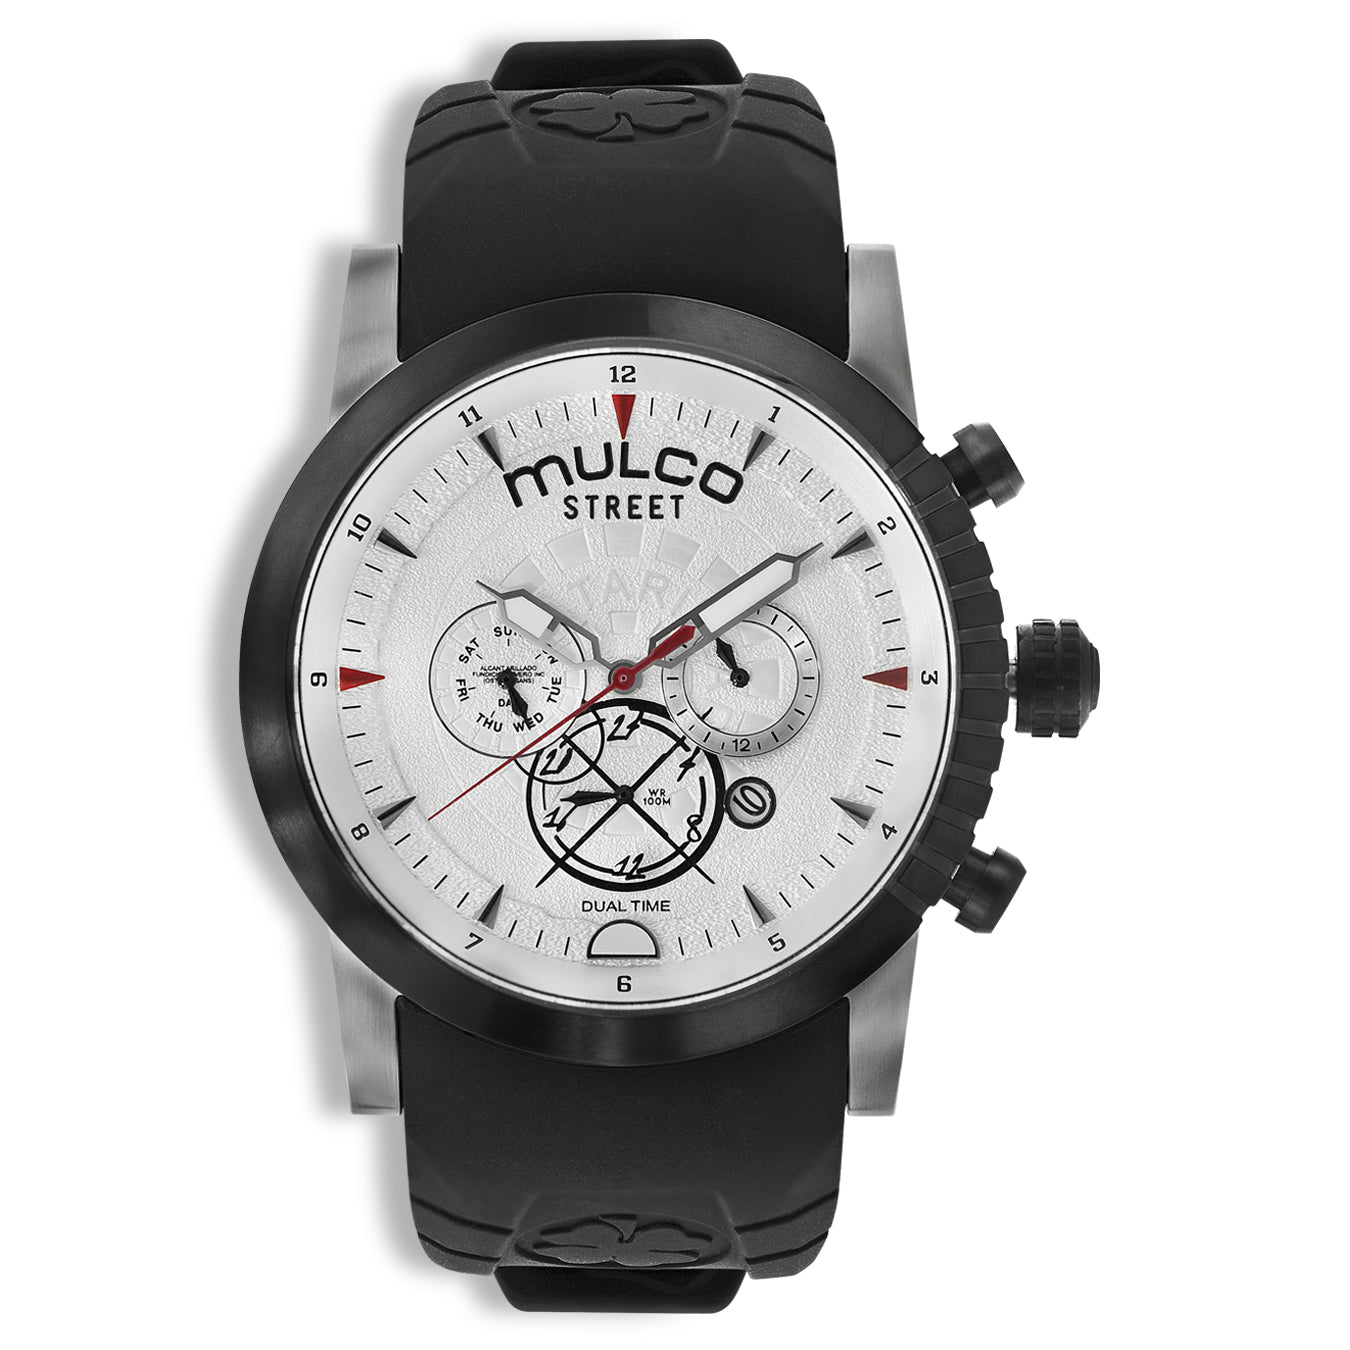 Strap-15097-021-Strap-Mulco-Watches